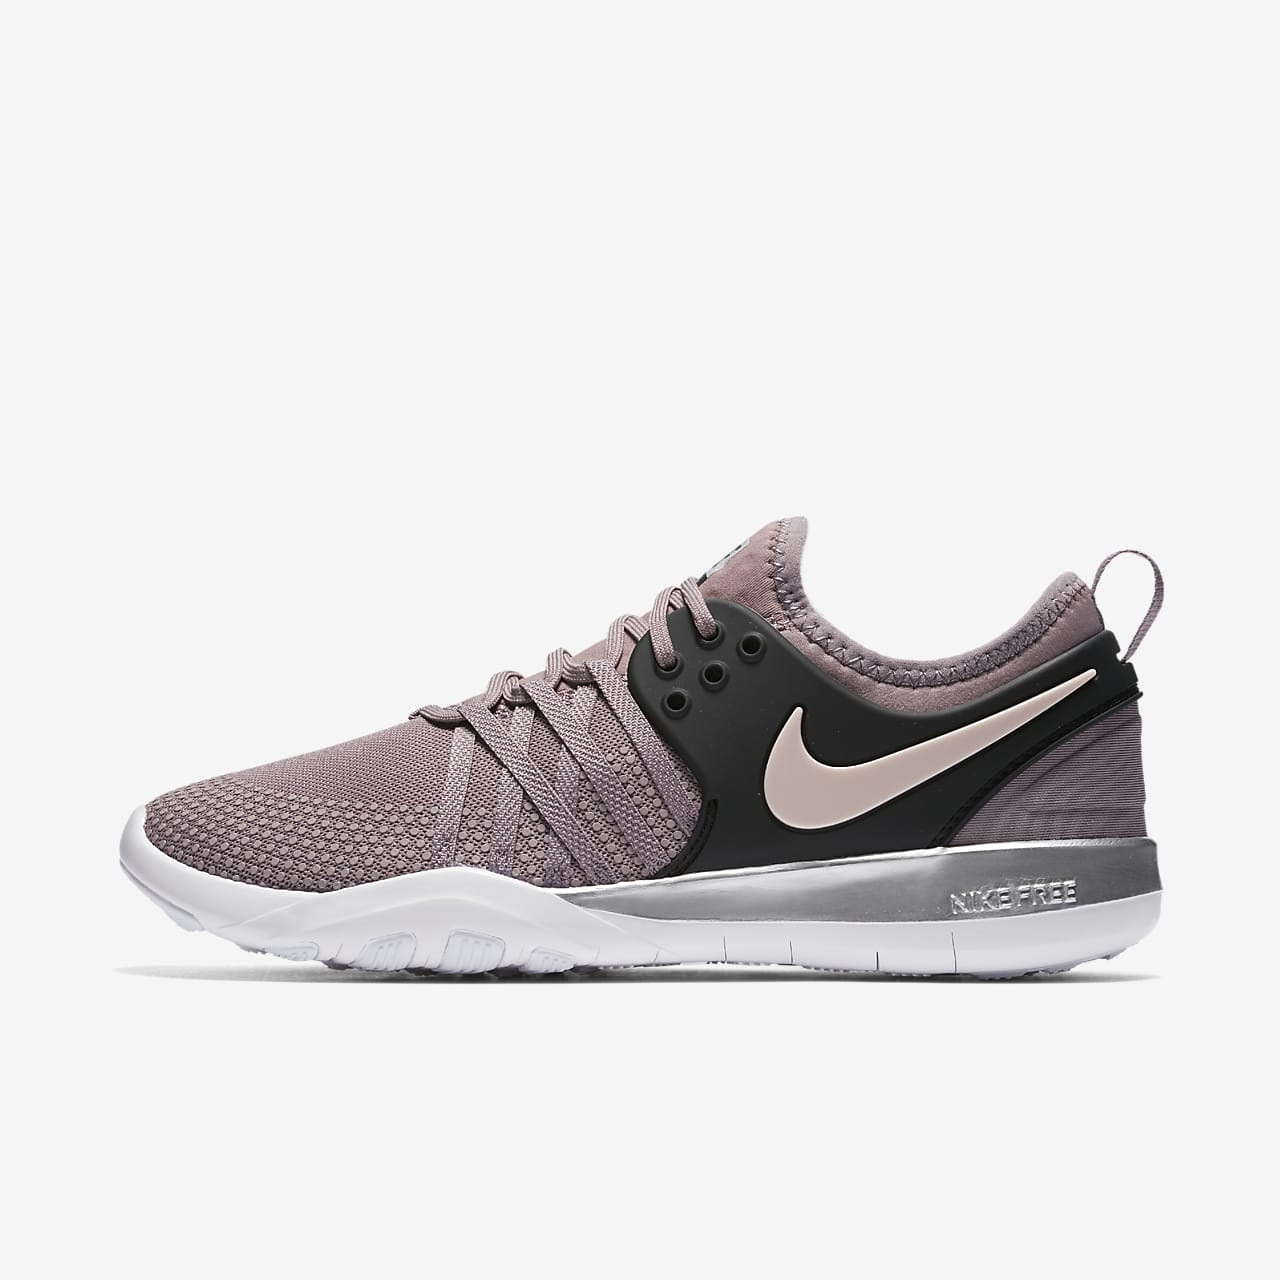 Nike Free TR 7 Chrome Blush Women's Gym/HIIT/Cross Training Shoe. Nike ID